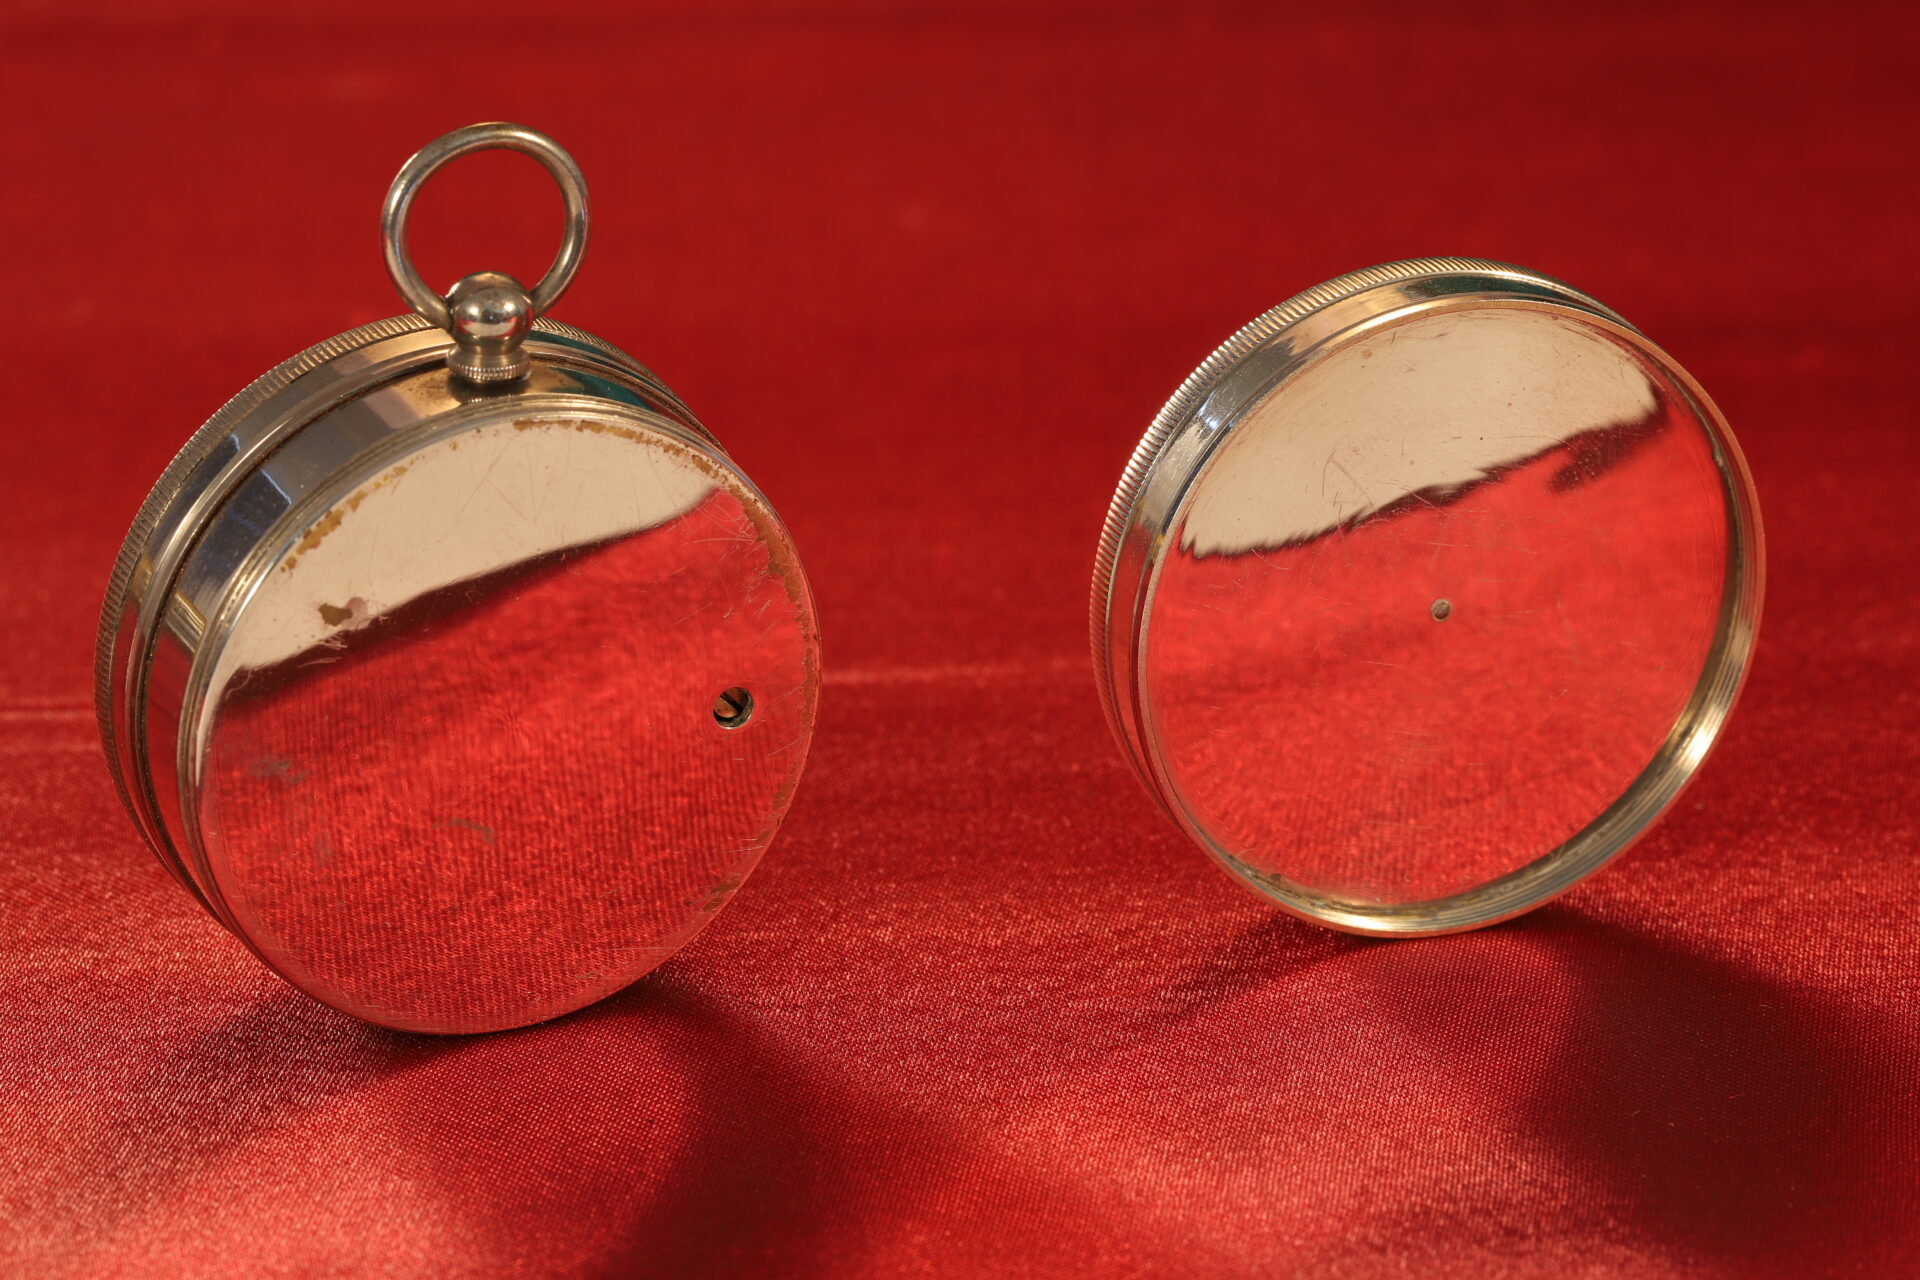 Image of reverse of pocket barometer and compass from Army & Navy COSL Pocket Barometer Compendium c1880